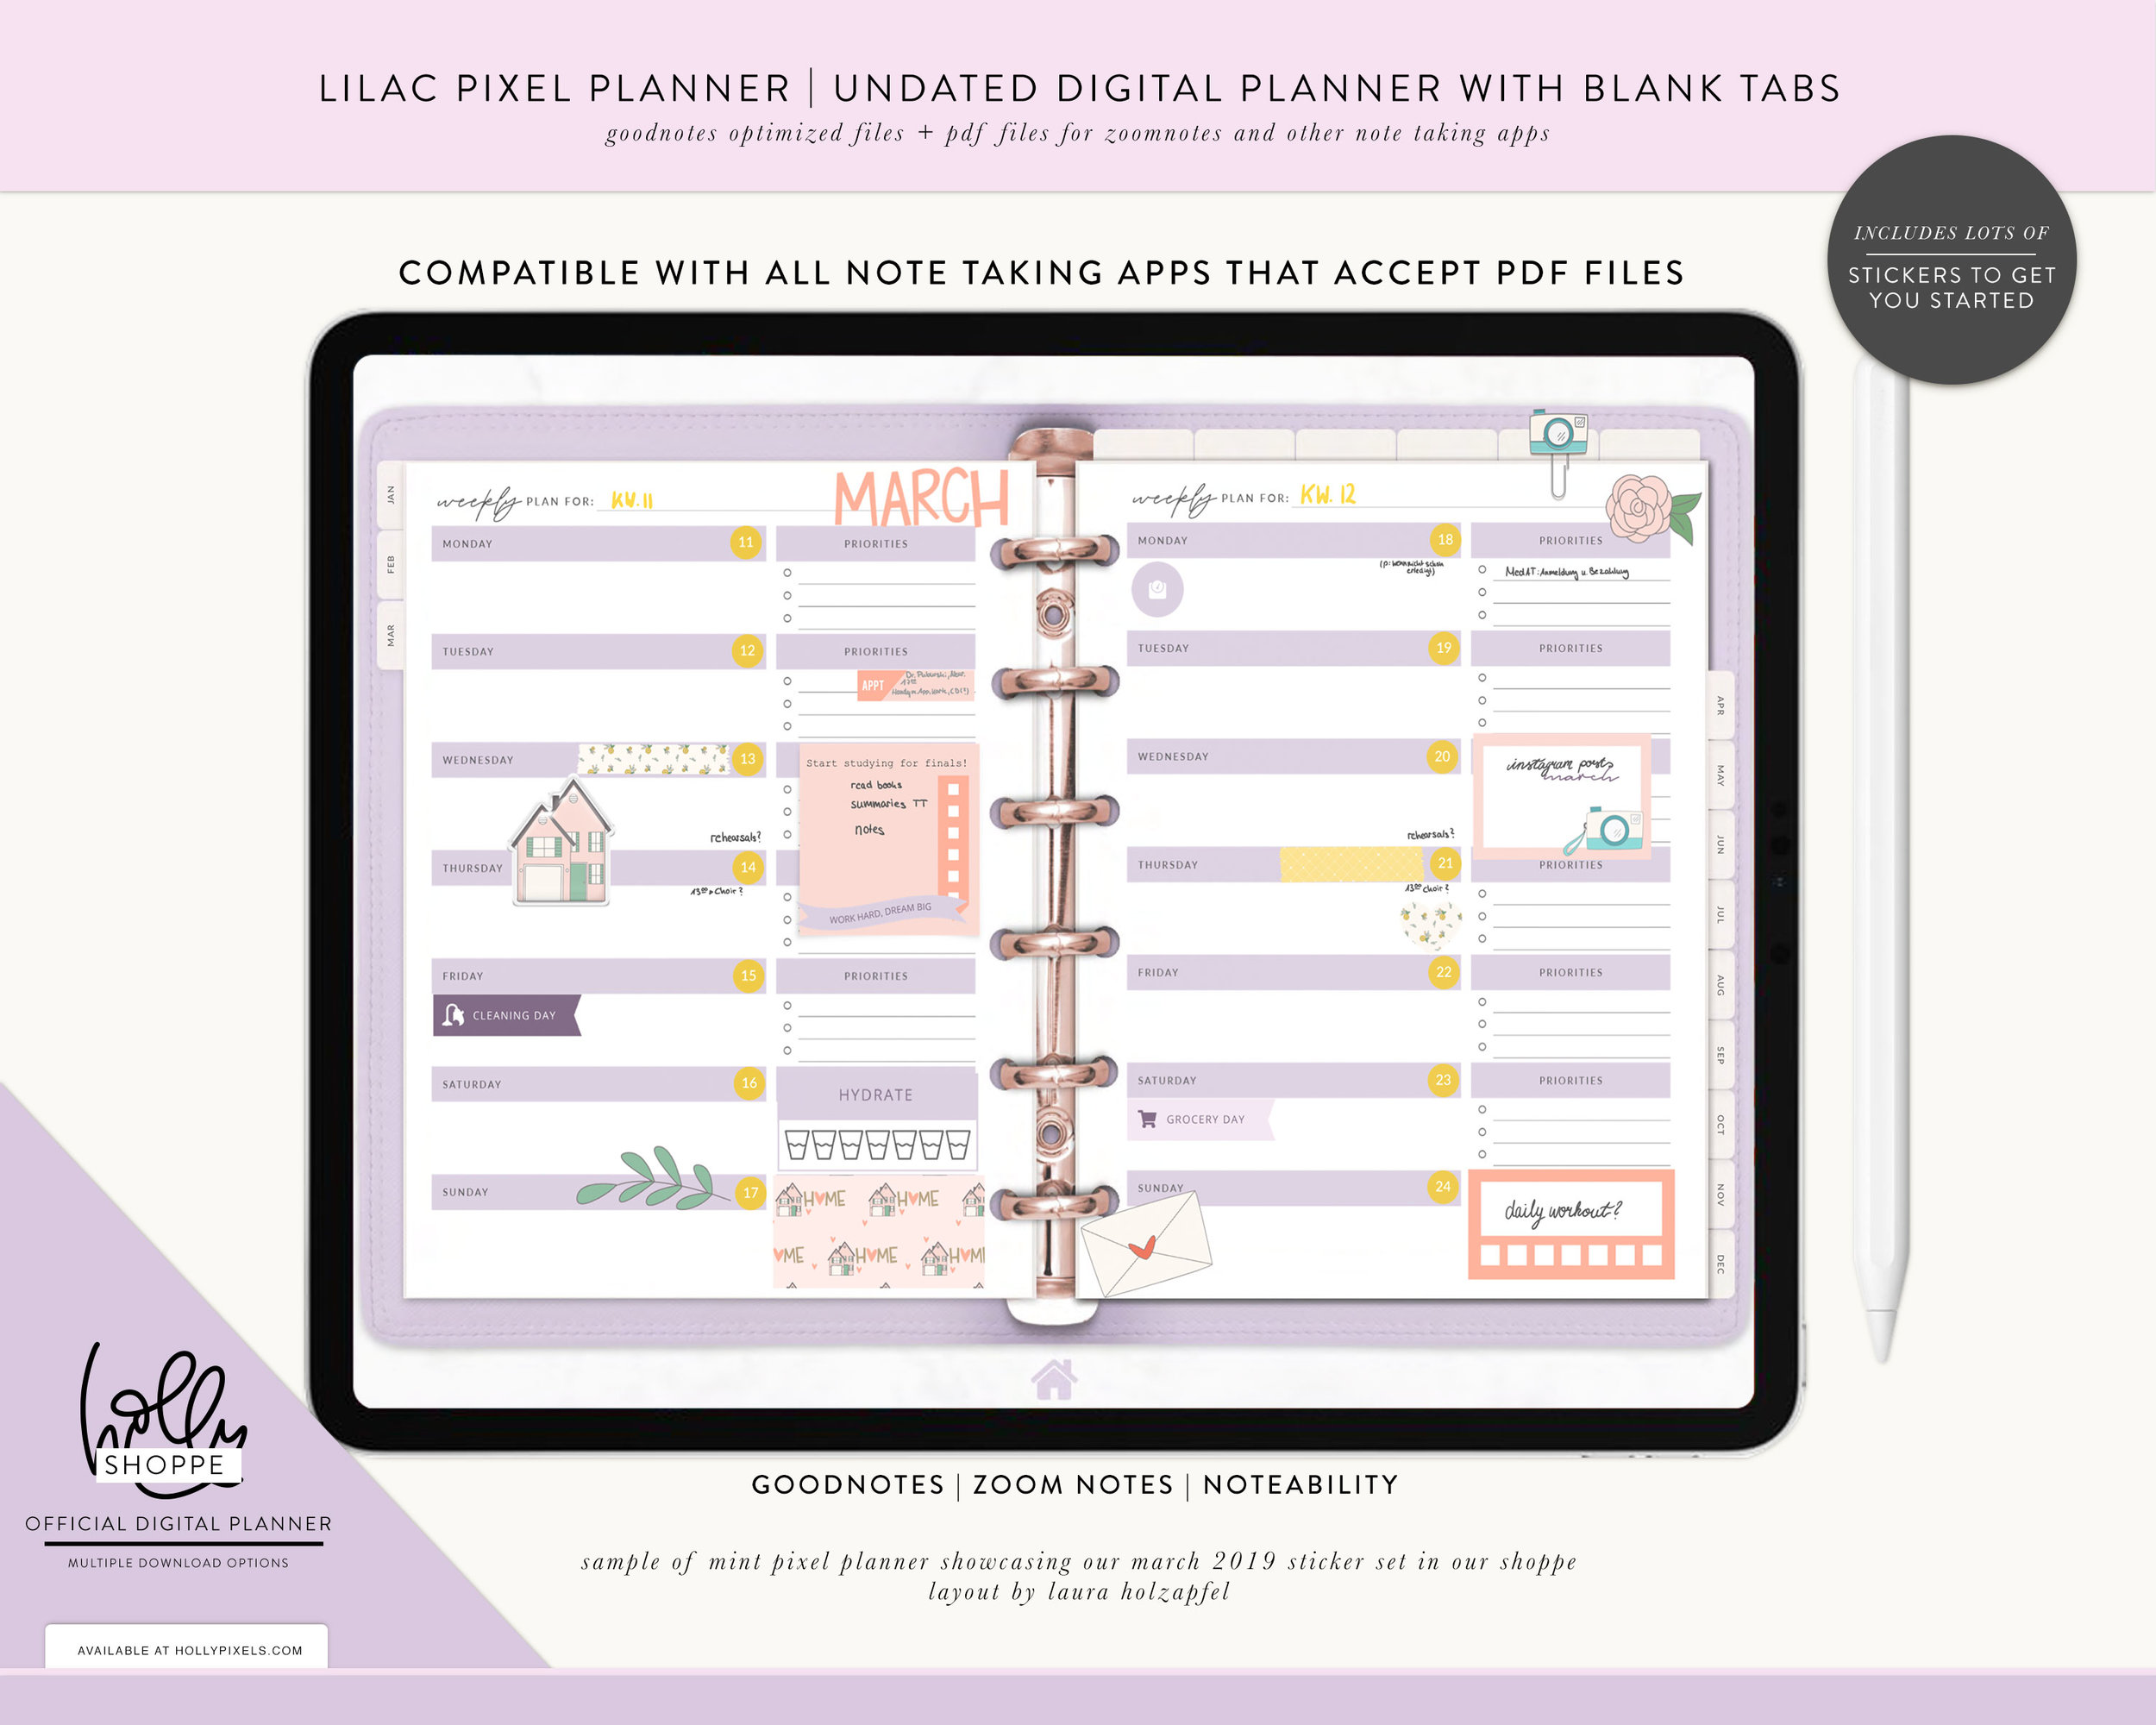 Meet the Digital Pixel Planner 2.0 in Lilac. Image Courtesy of    Holly Pixels